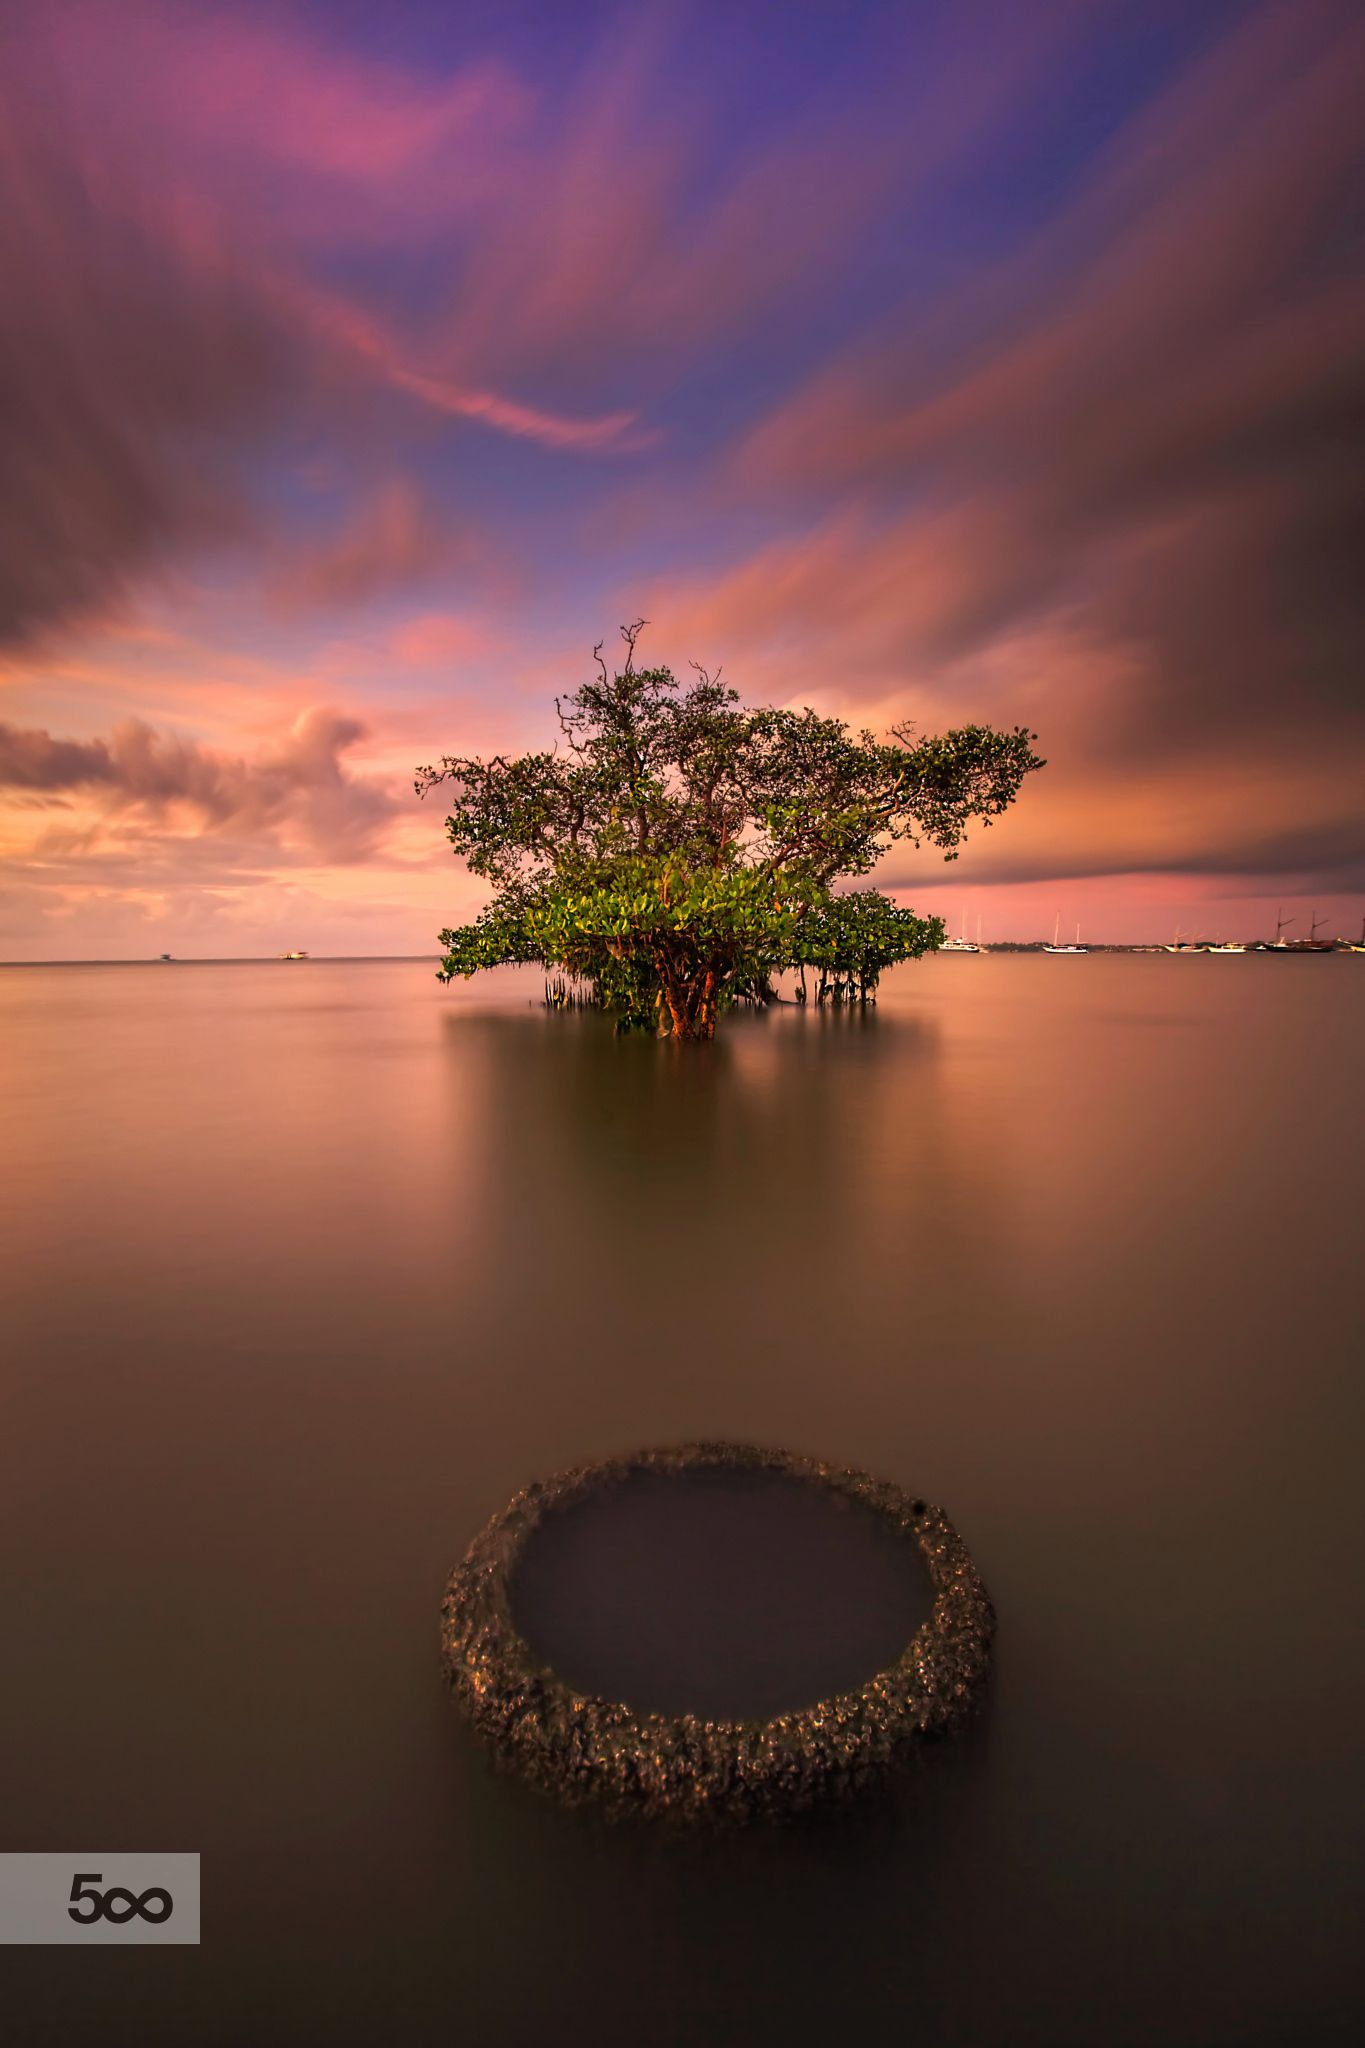 Mystery Of Black Hole By Bertoni Siswanto On 500px